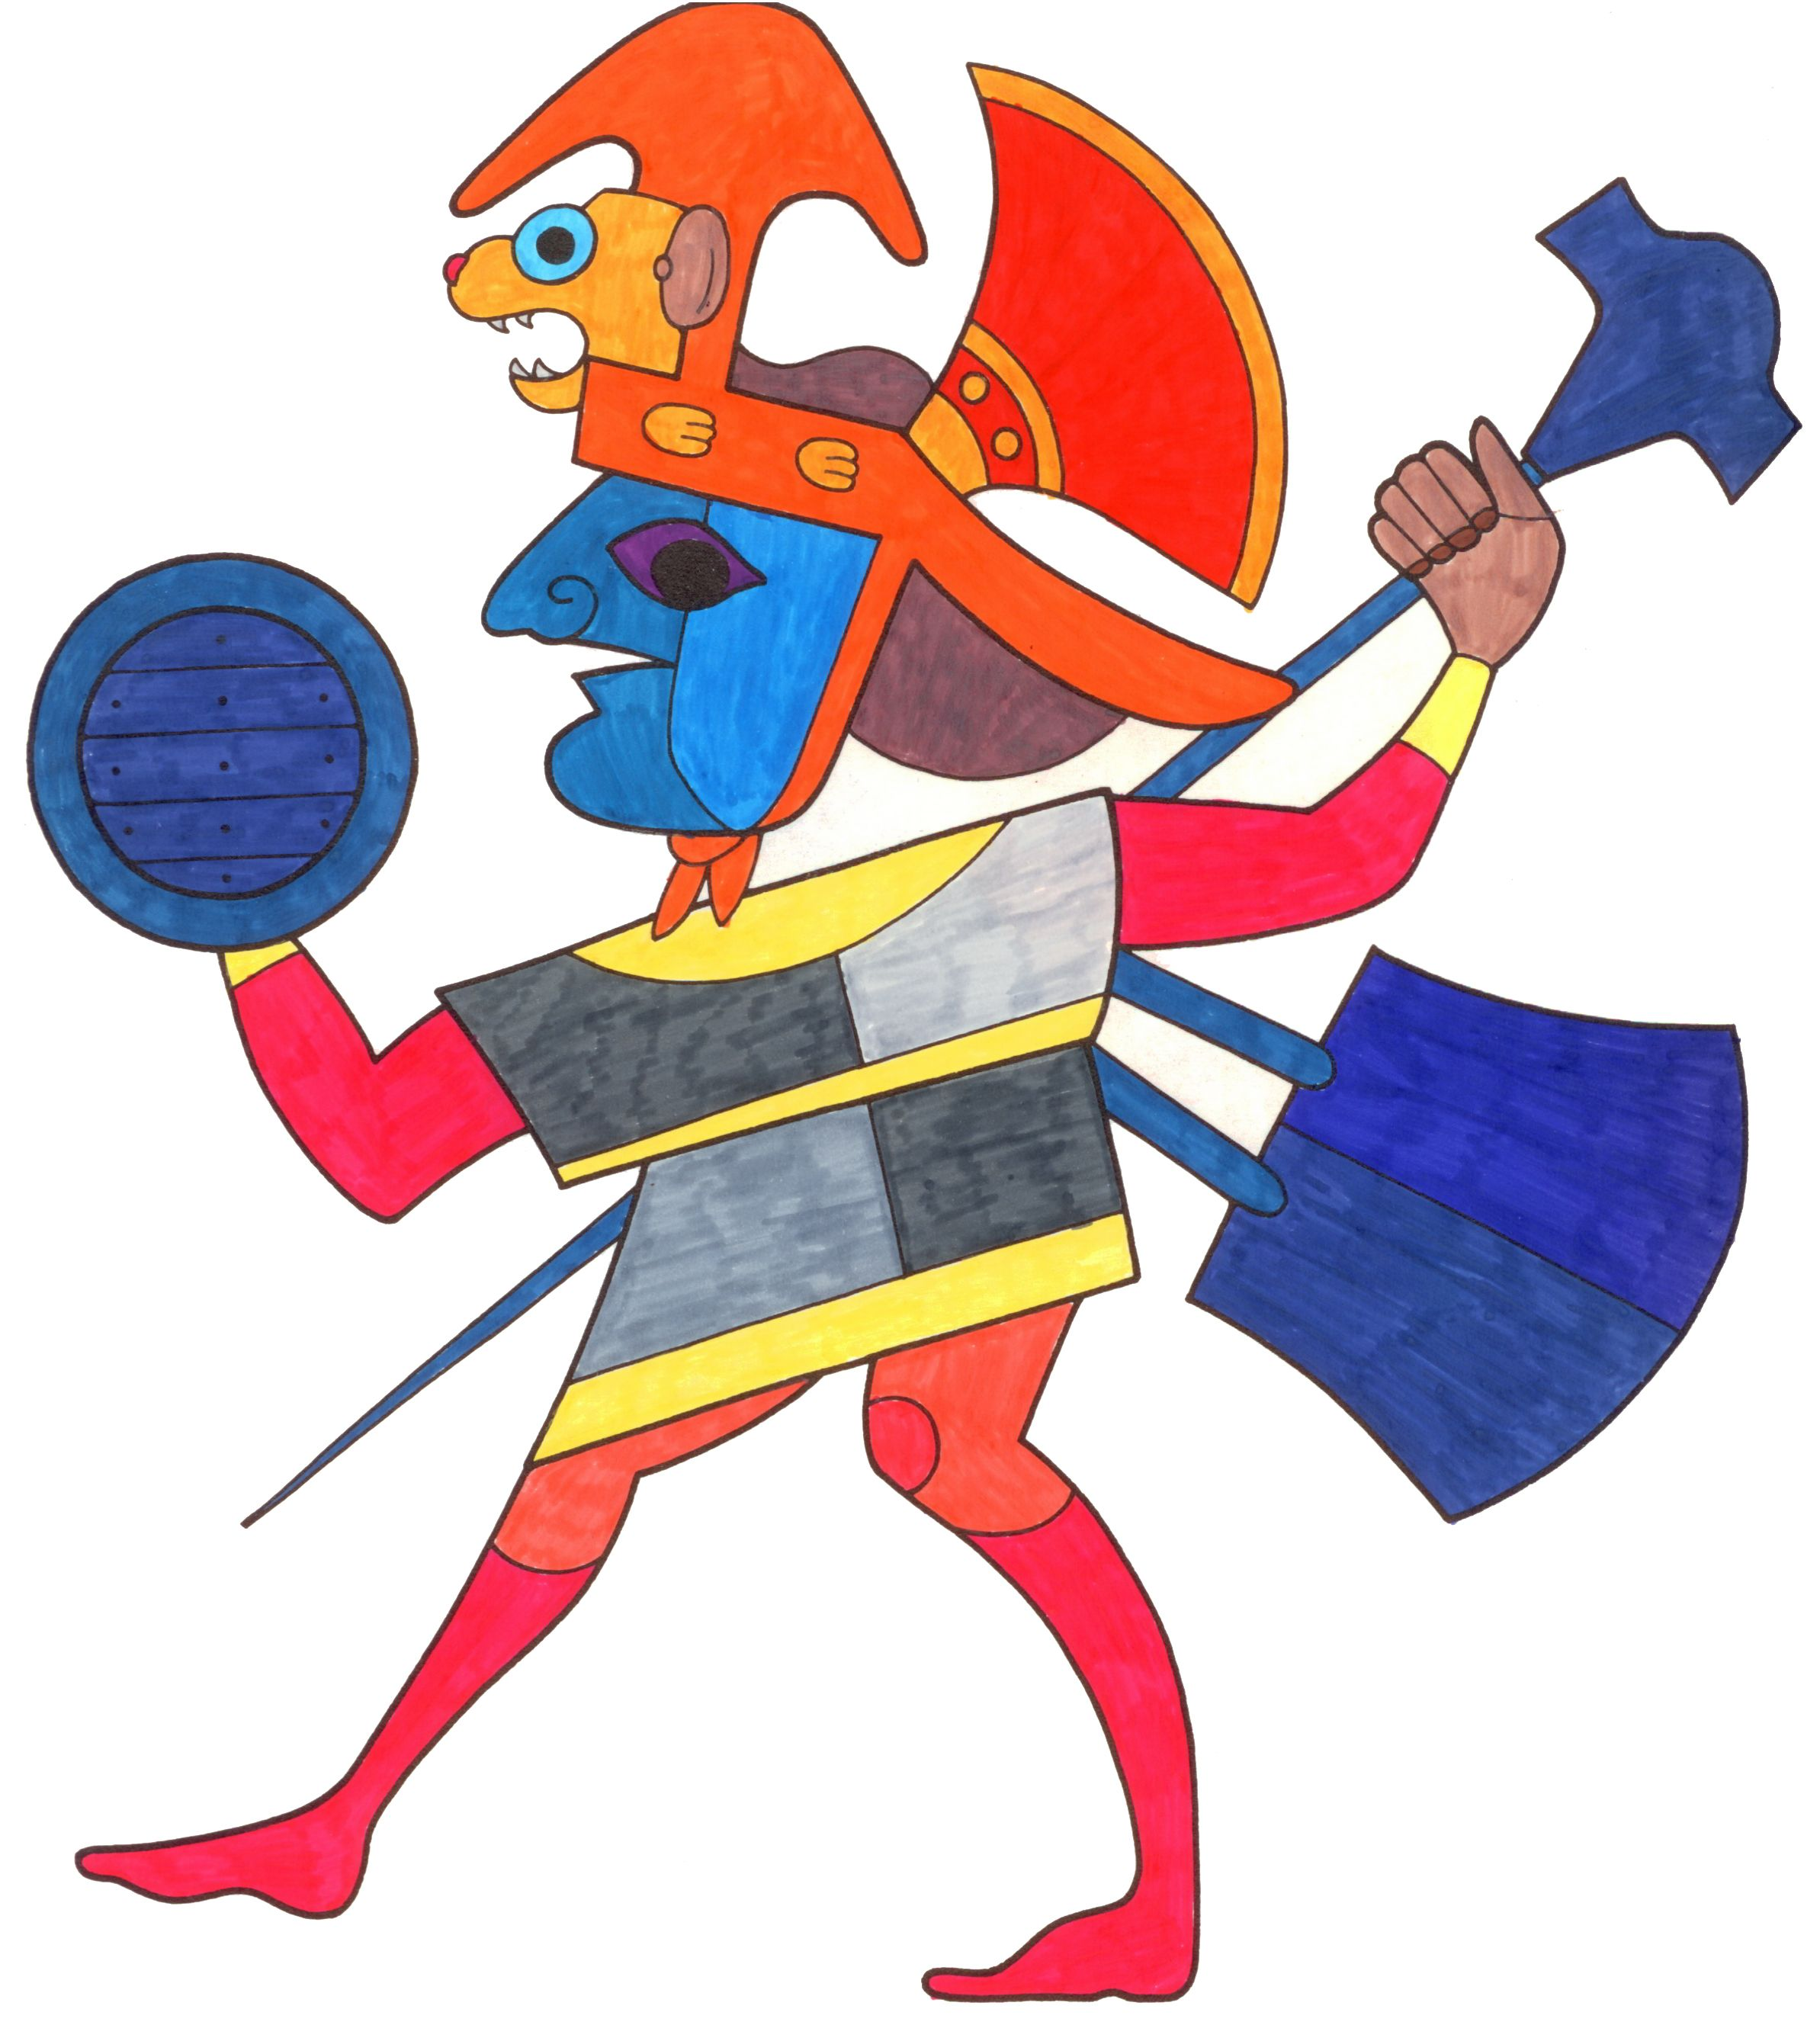 Mayan Mochica Warrior (Colored Pen by San Diego video